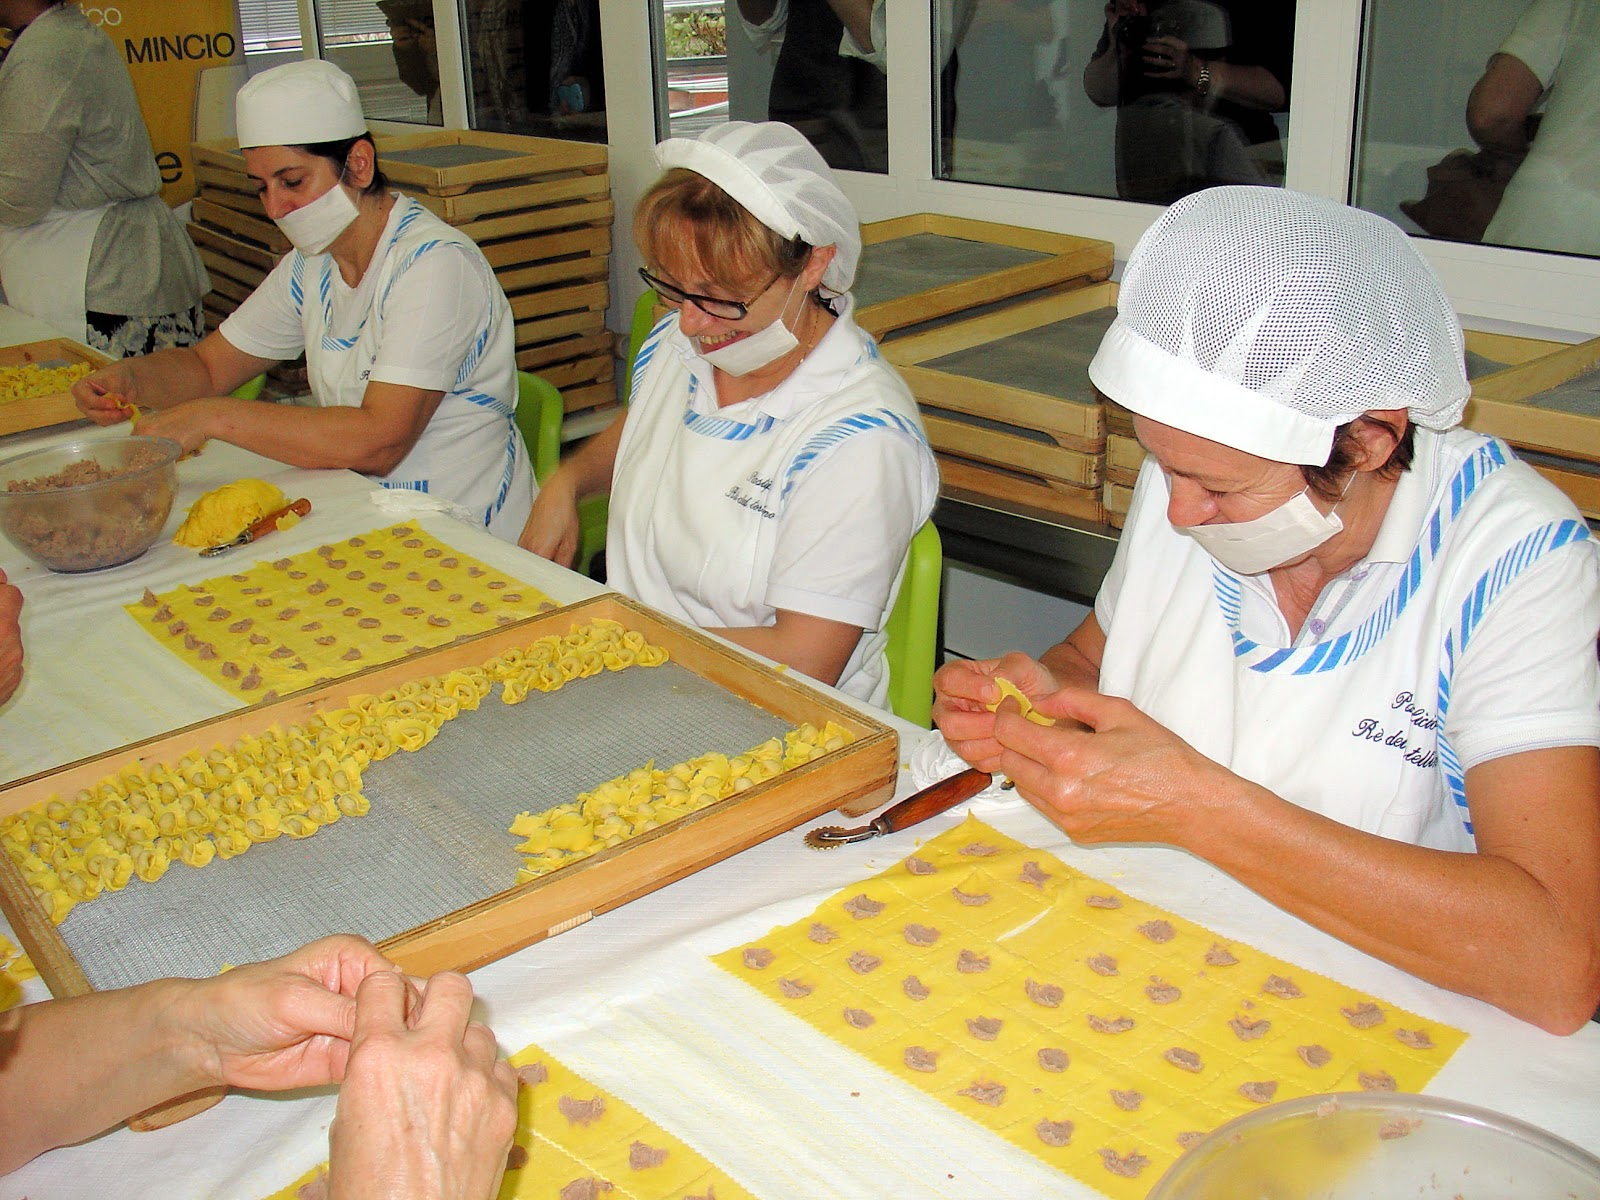 Hand folding tortellini in the traditions passed down by the generations.